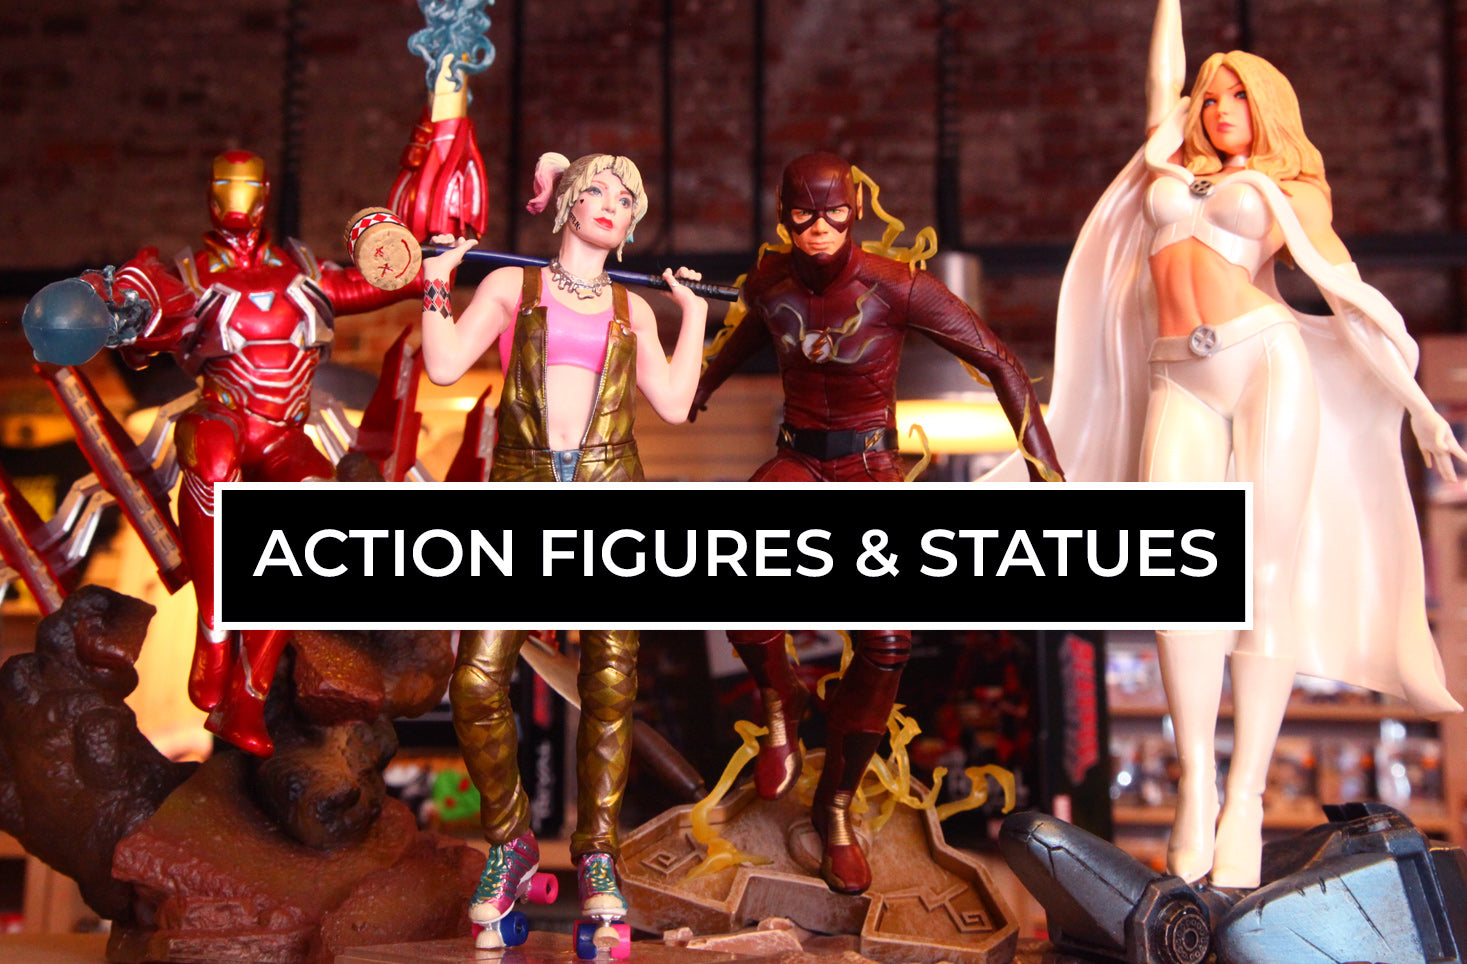 Action Figures & Statues